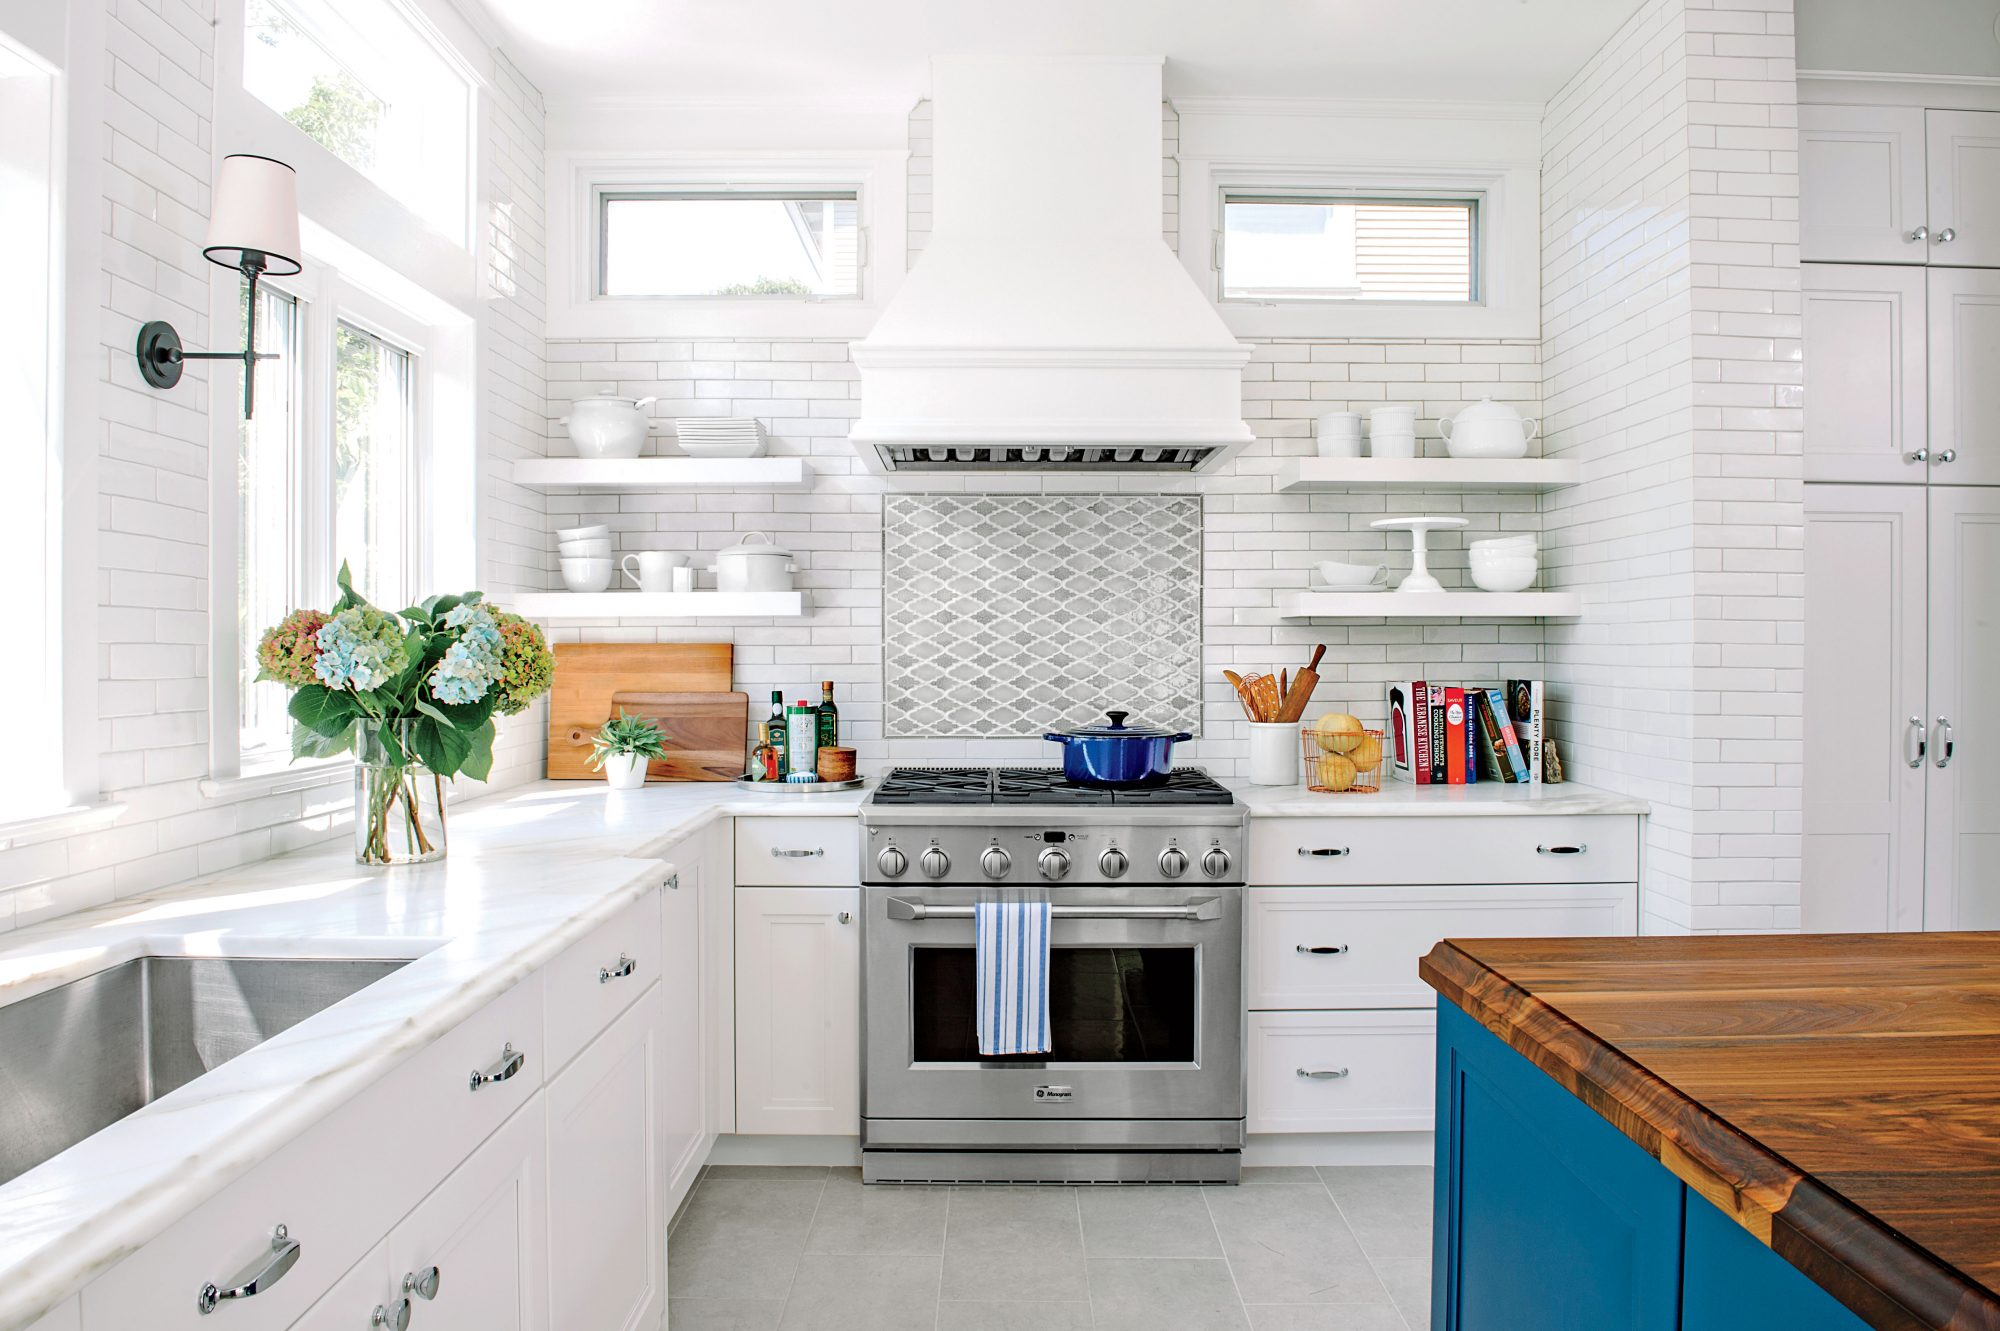 Wonderful Pictures Of Kitchen Makeovers Part - 10: White And Blue Kitchen Makeover